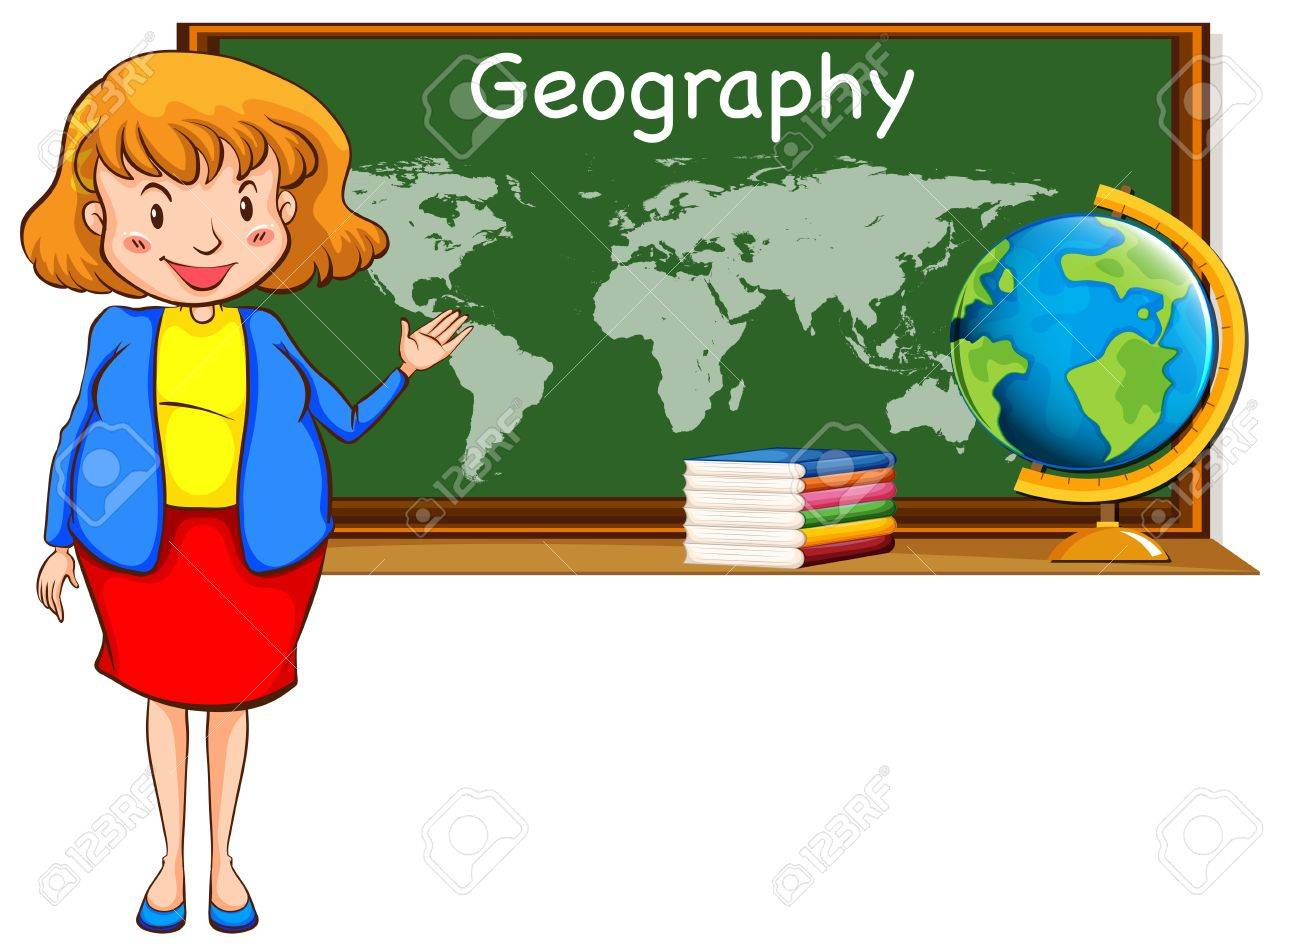 Geography Teacher And World Map On The Board Illustration Royalty